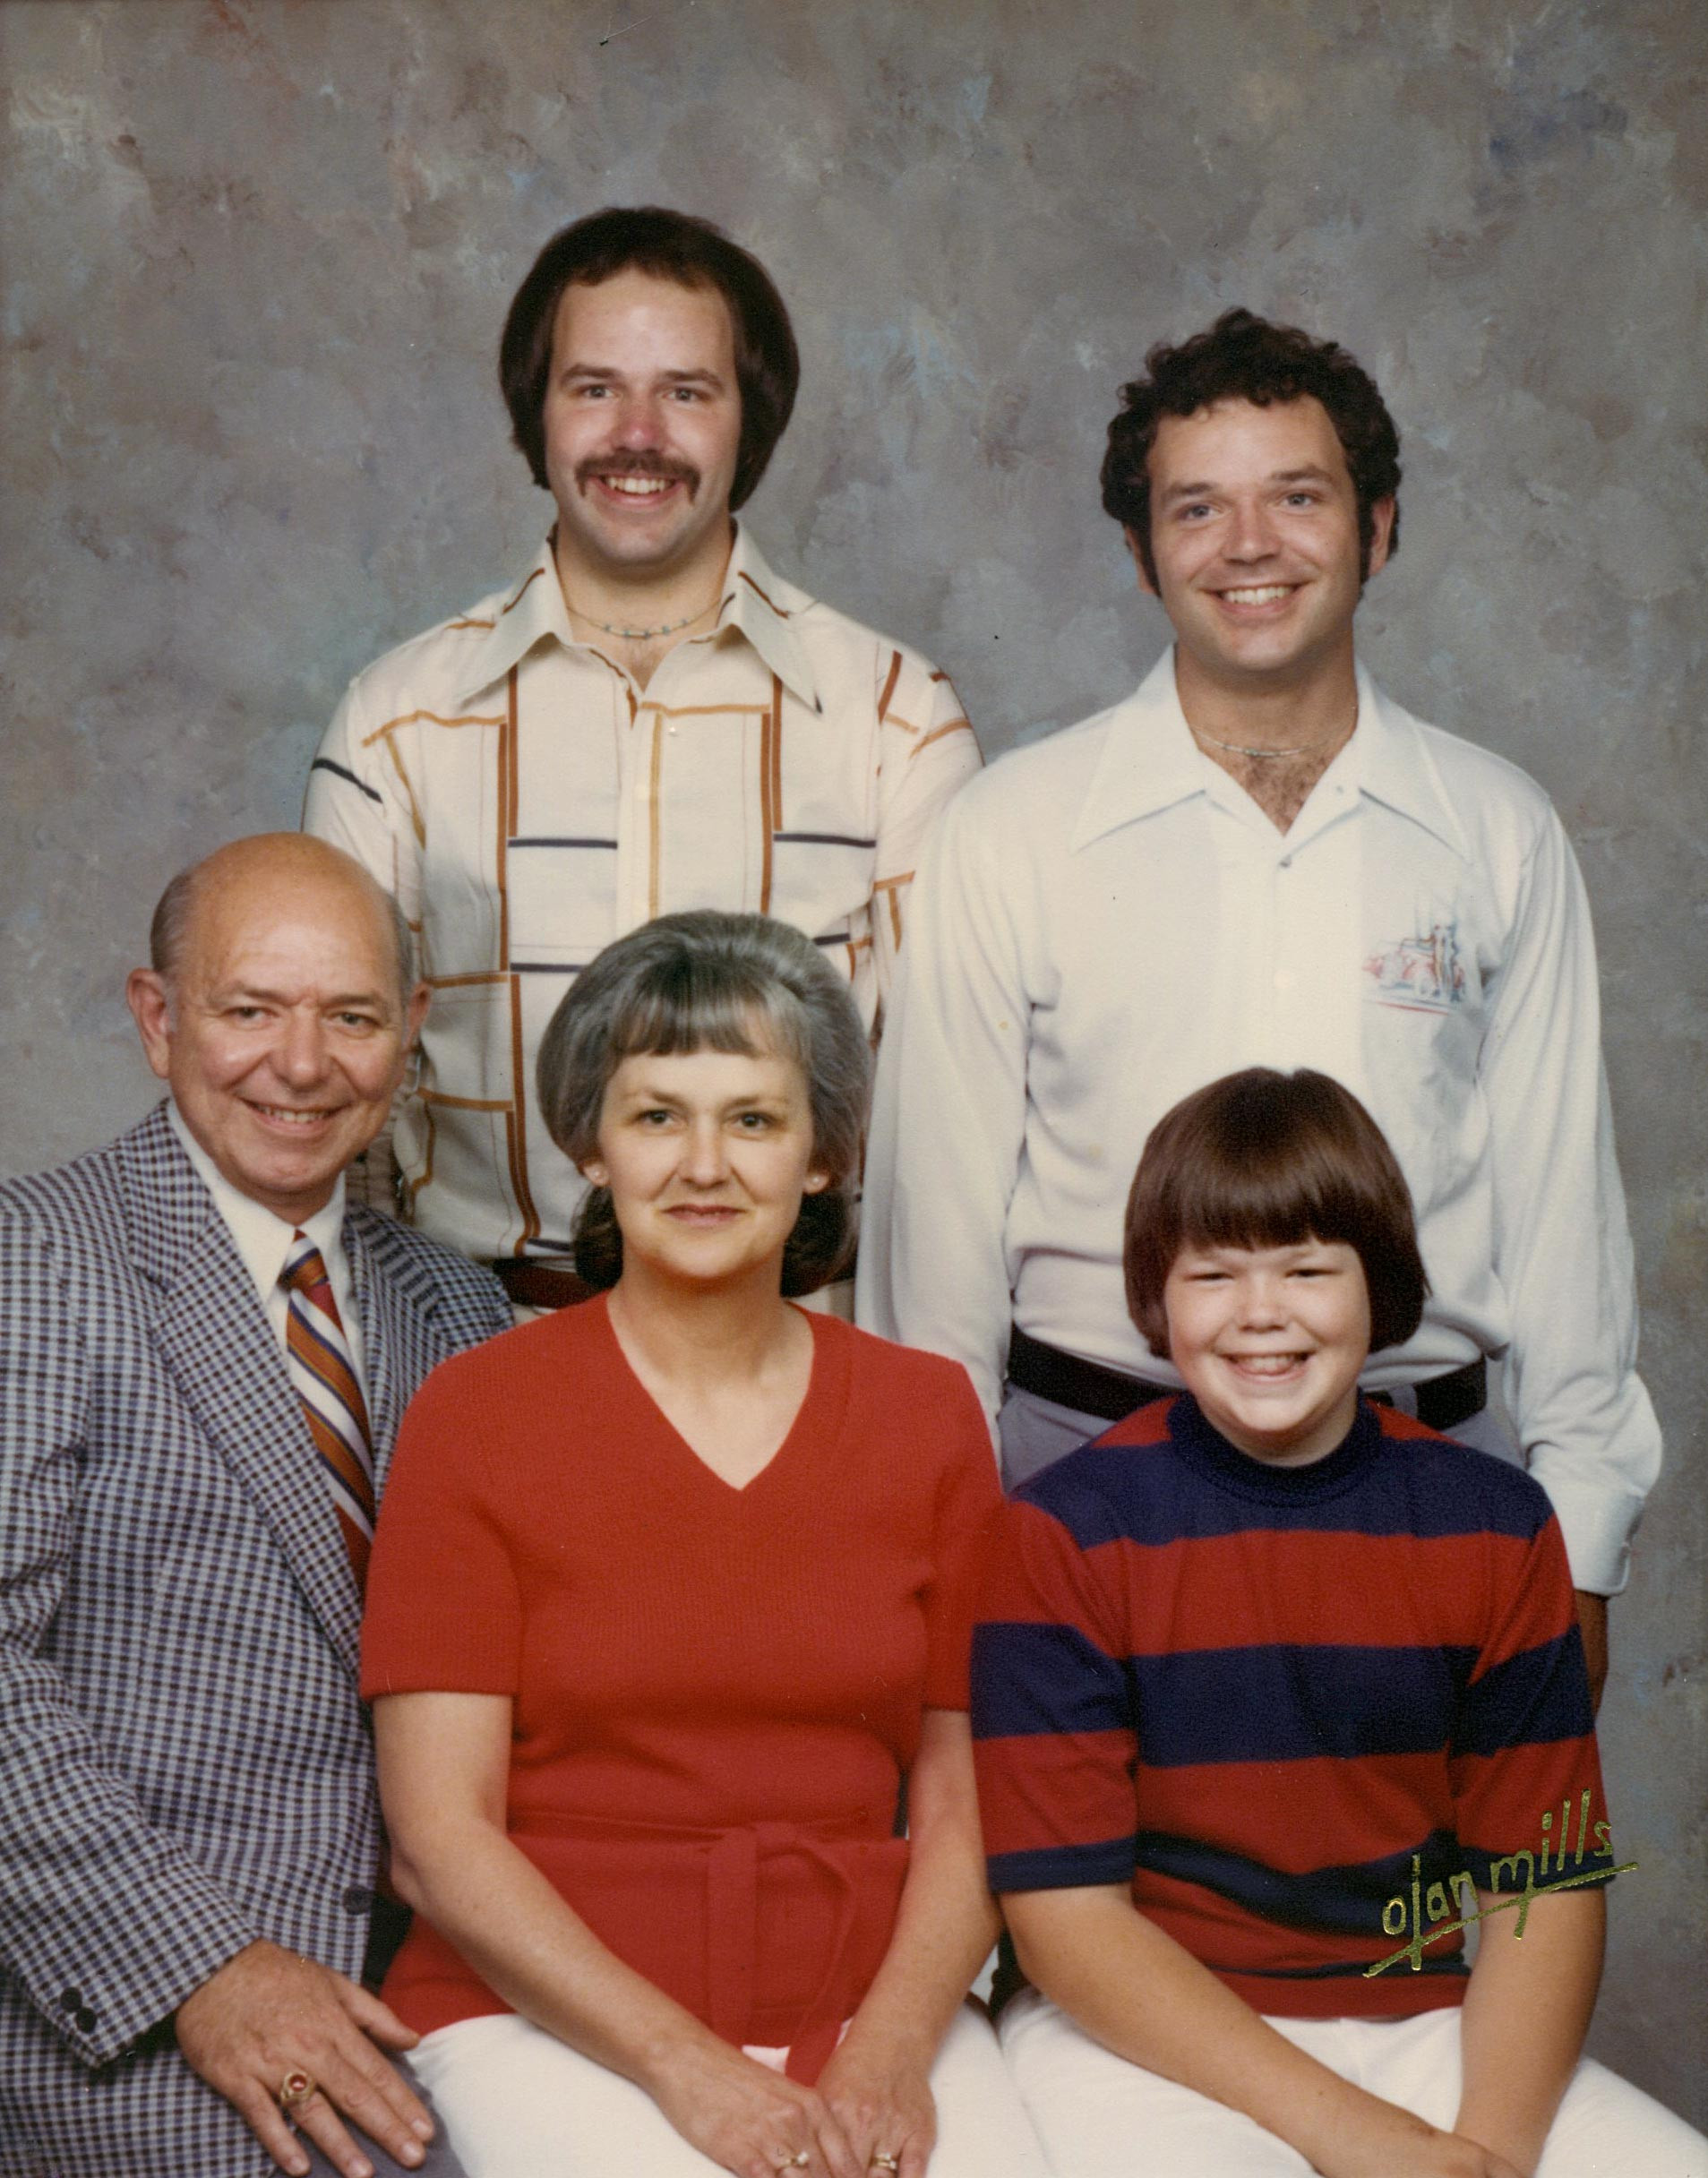 Tom (standing, right) with his parents and big brother Bob Jr. and younger brother John